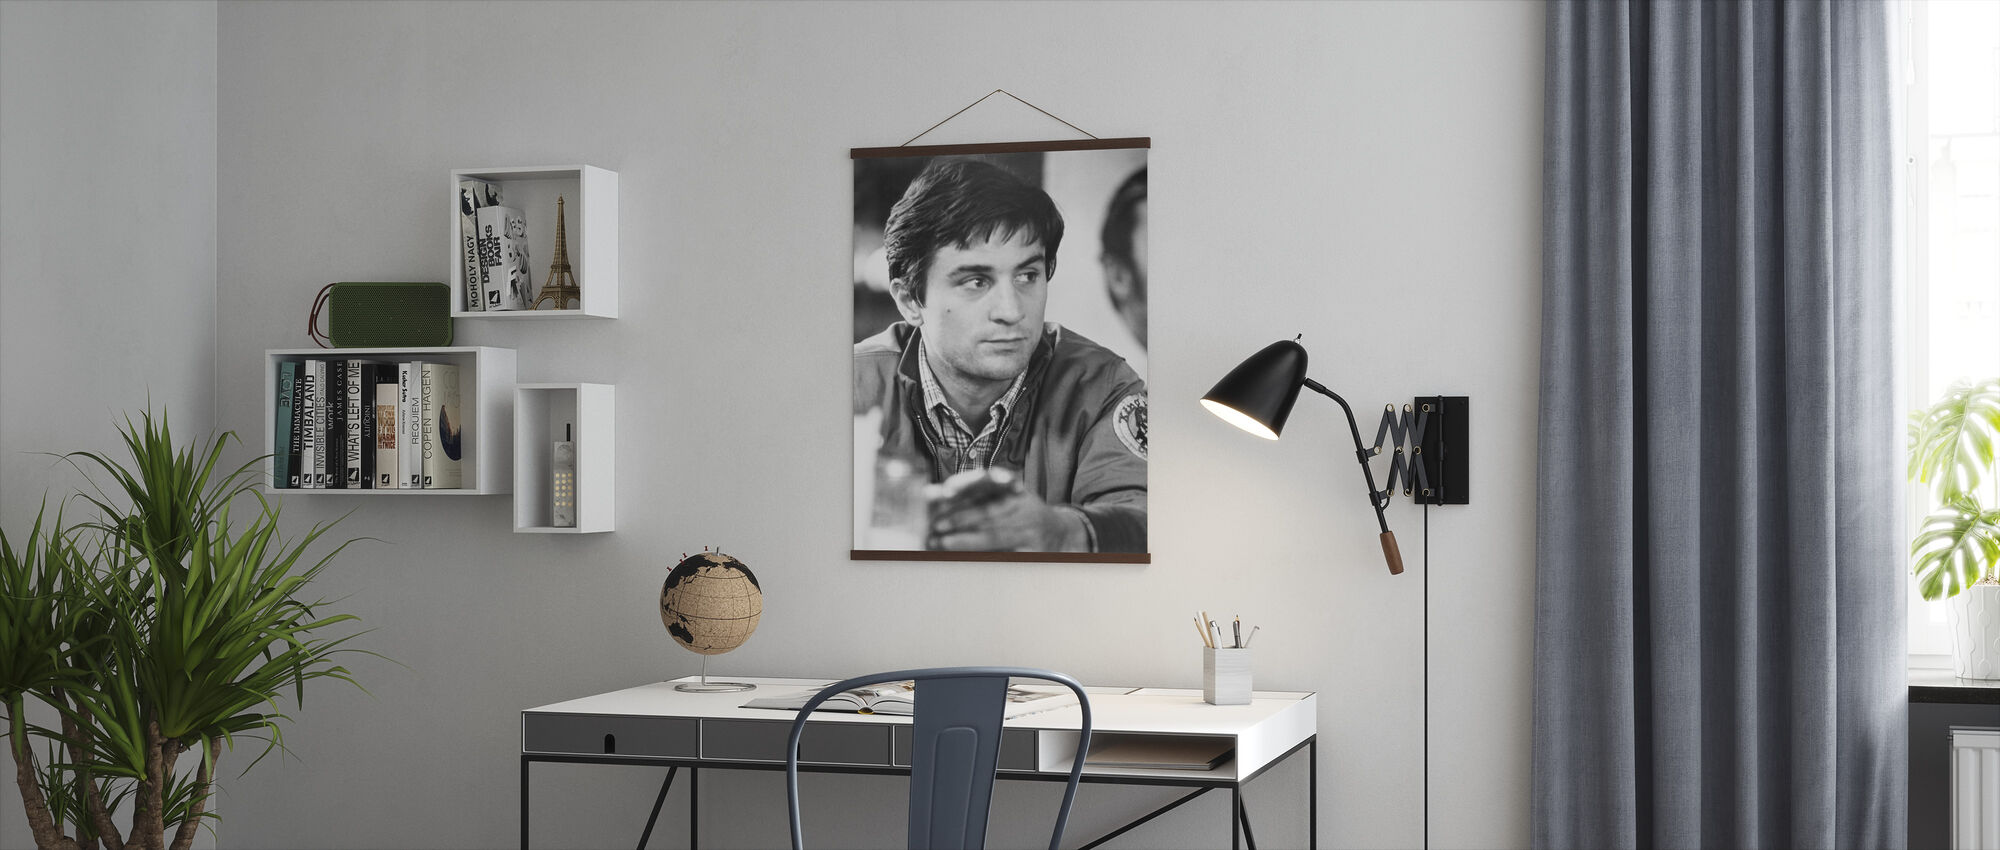 Taxi Driver - Travis Bickle - Poster - Office